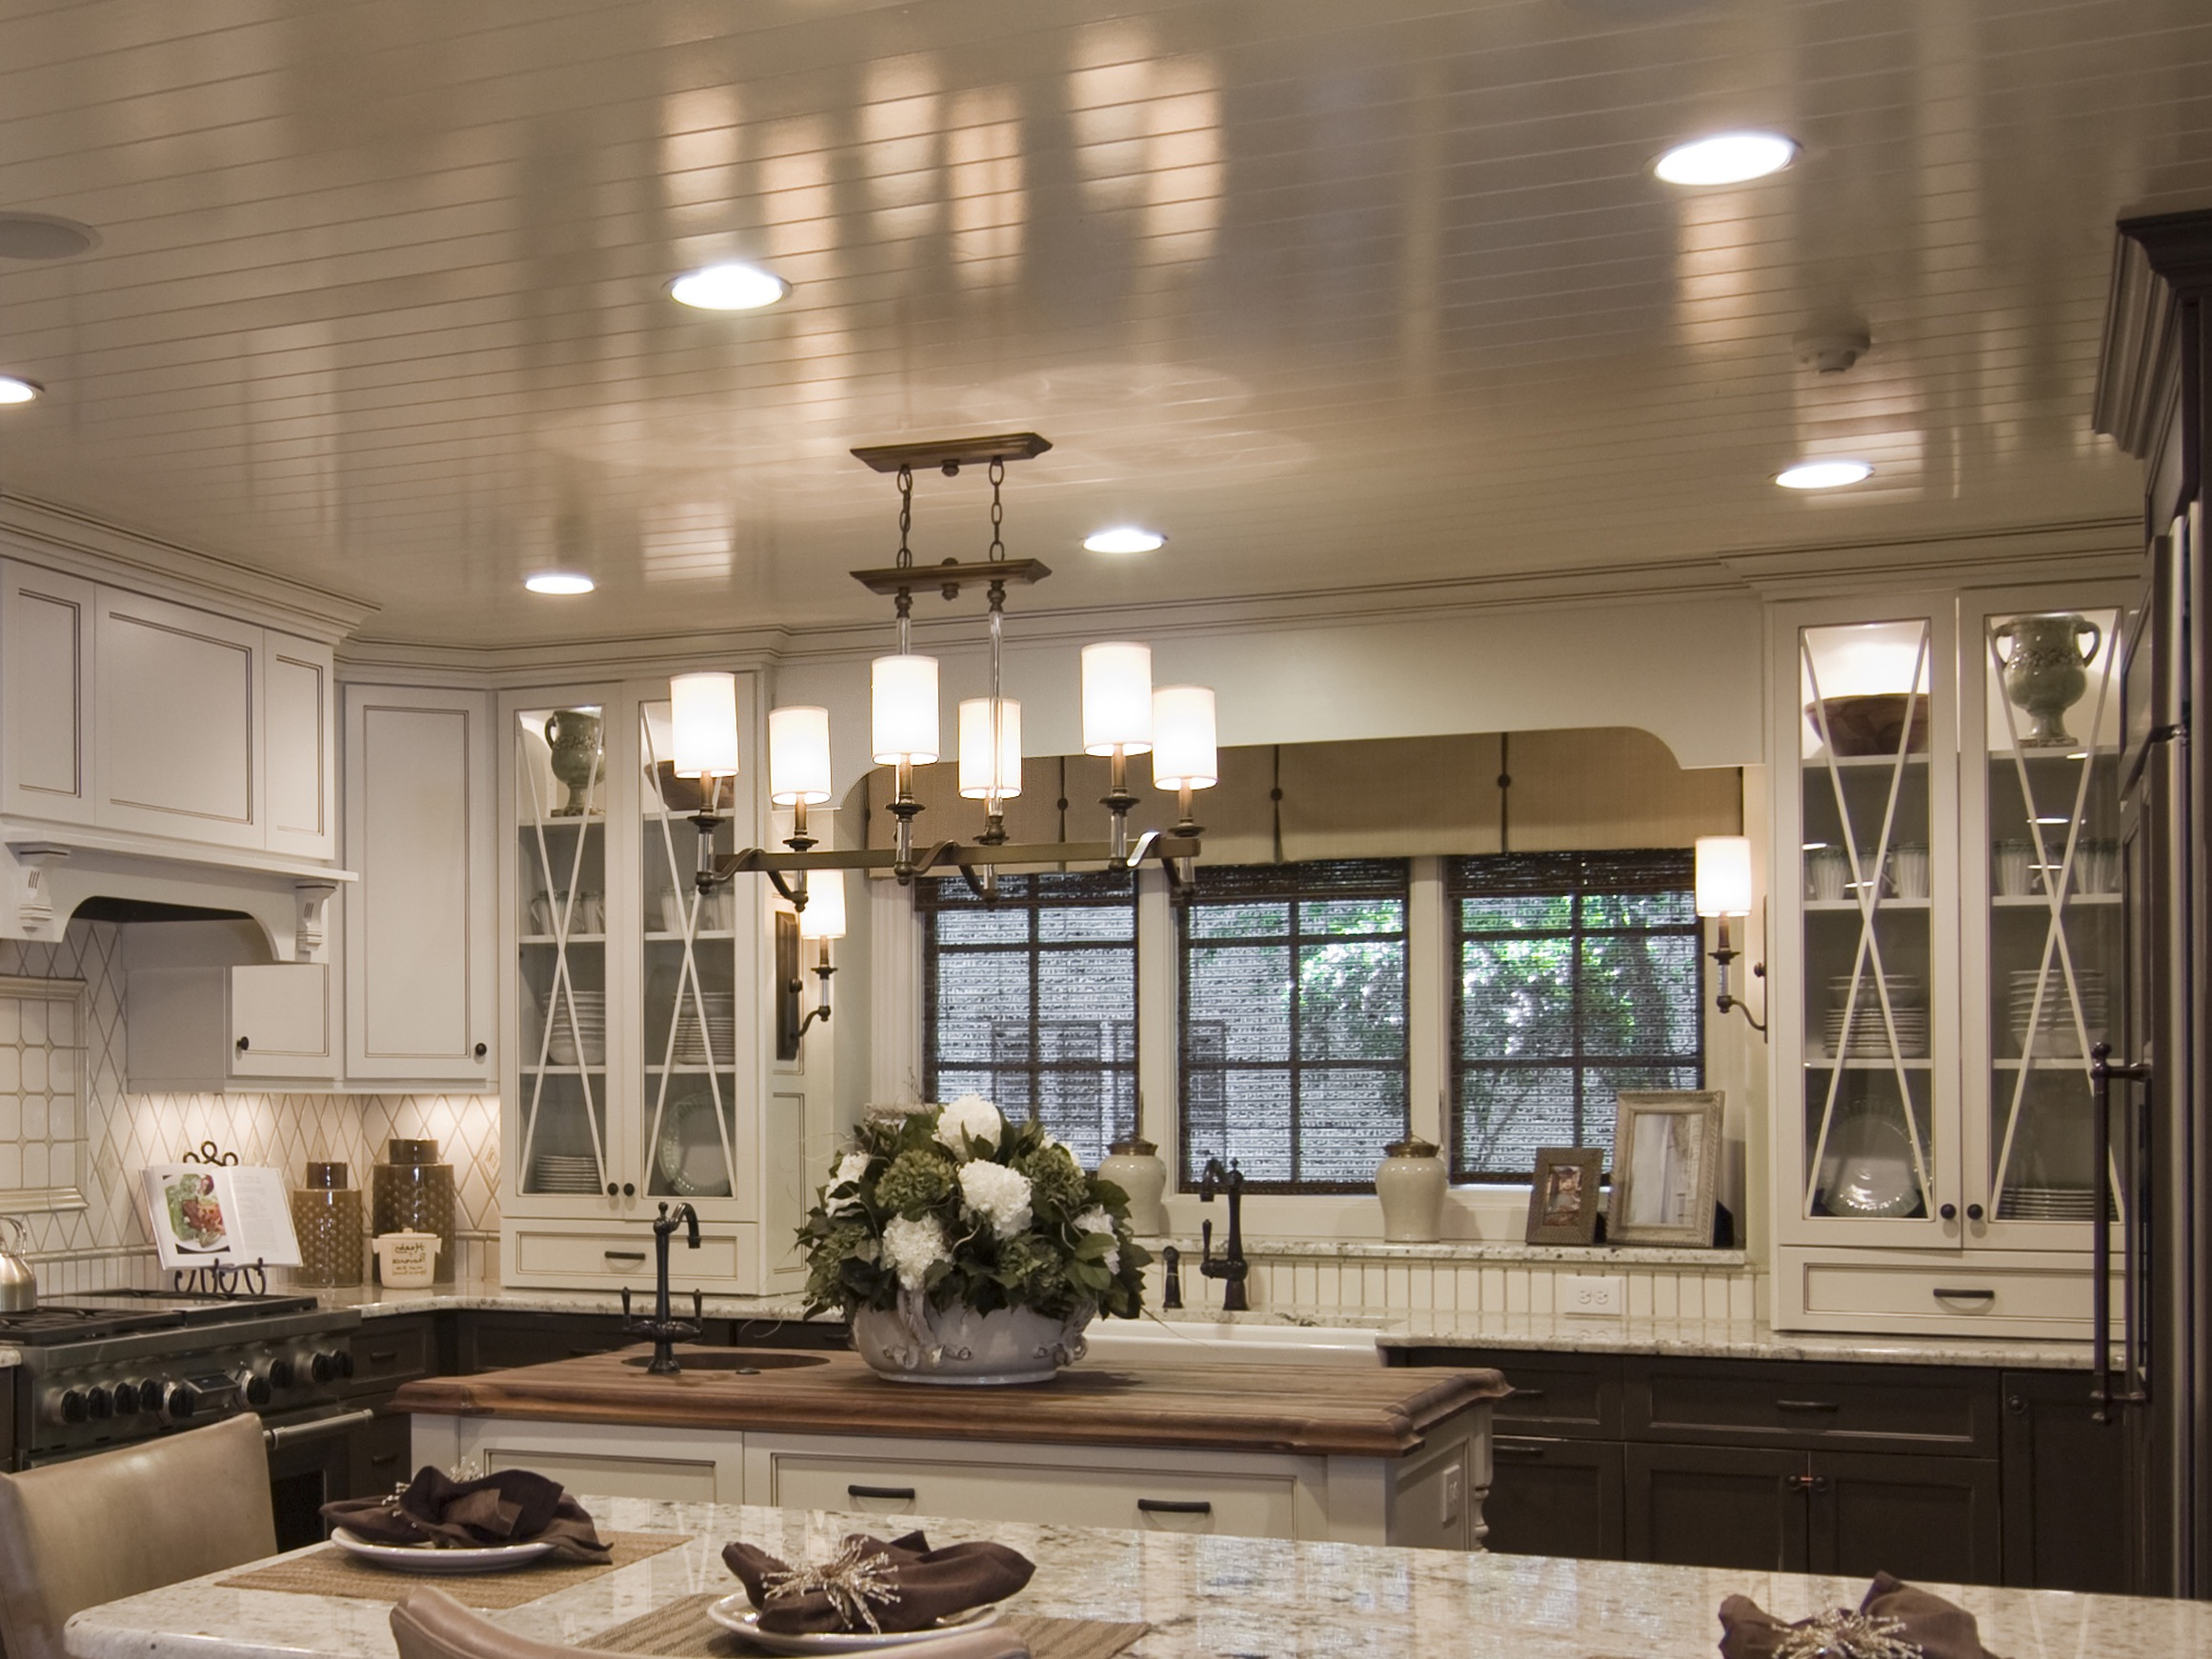 Stunning Kitchen Lighting (View 37 of 39)